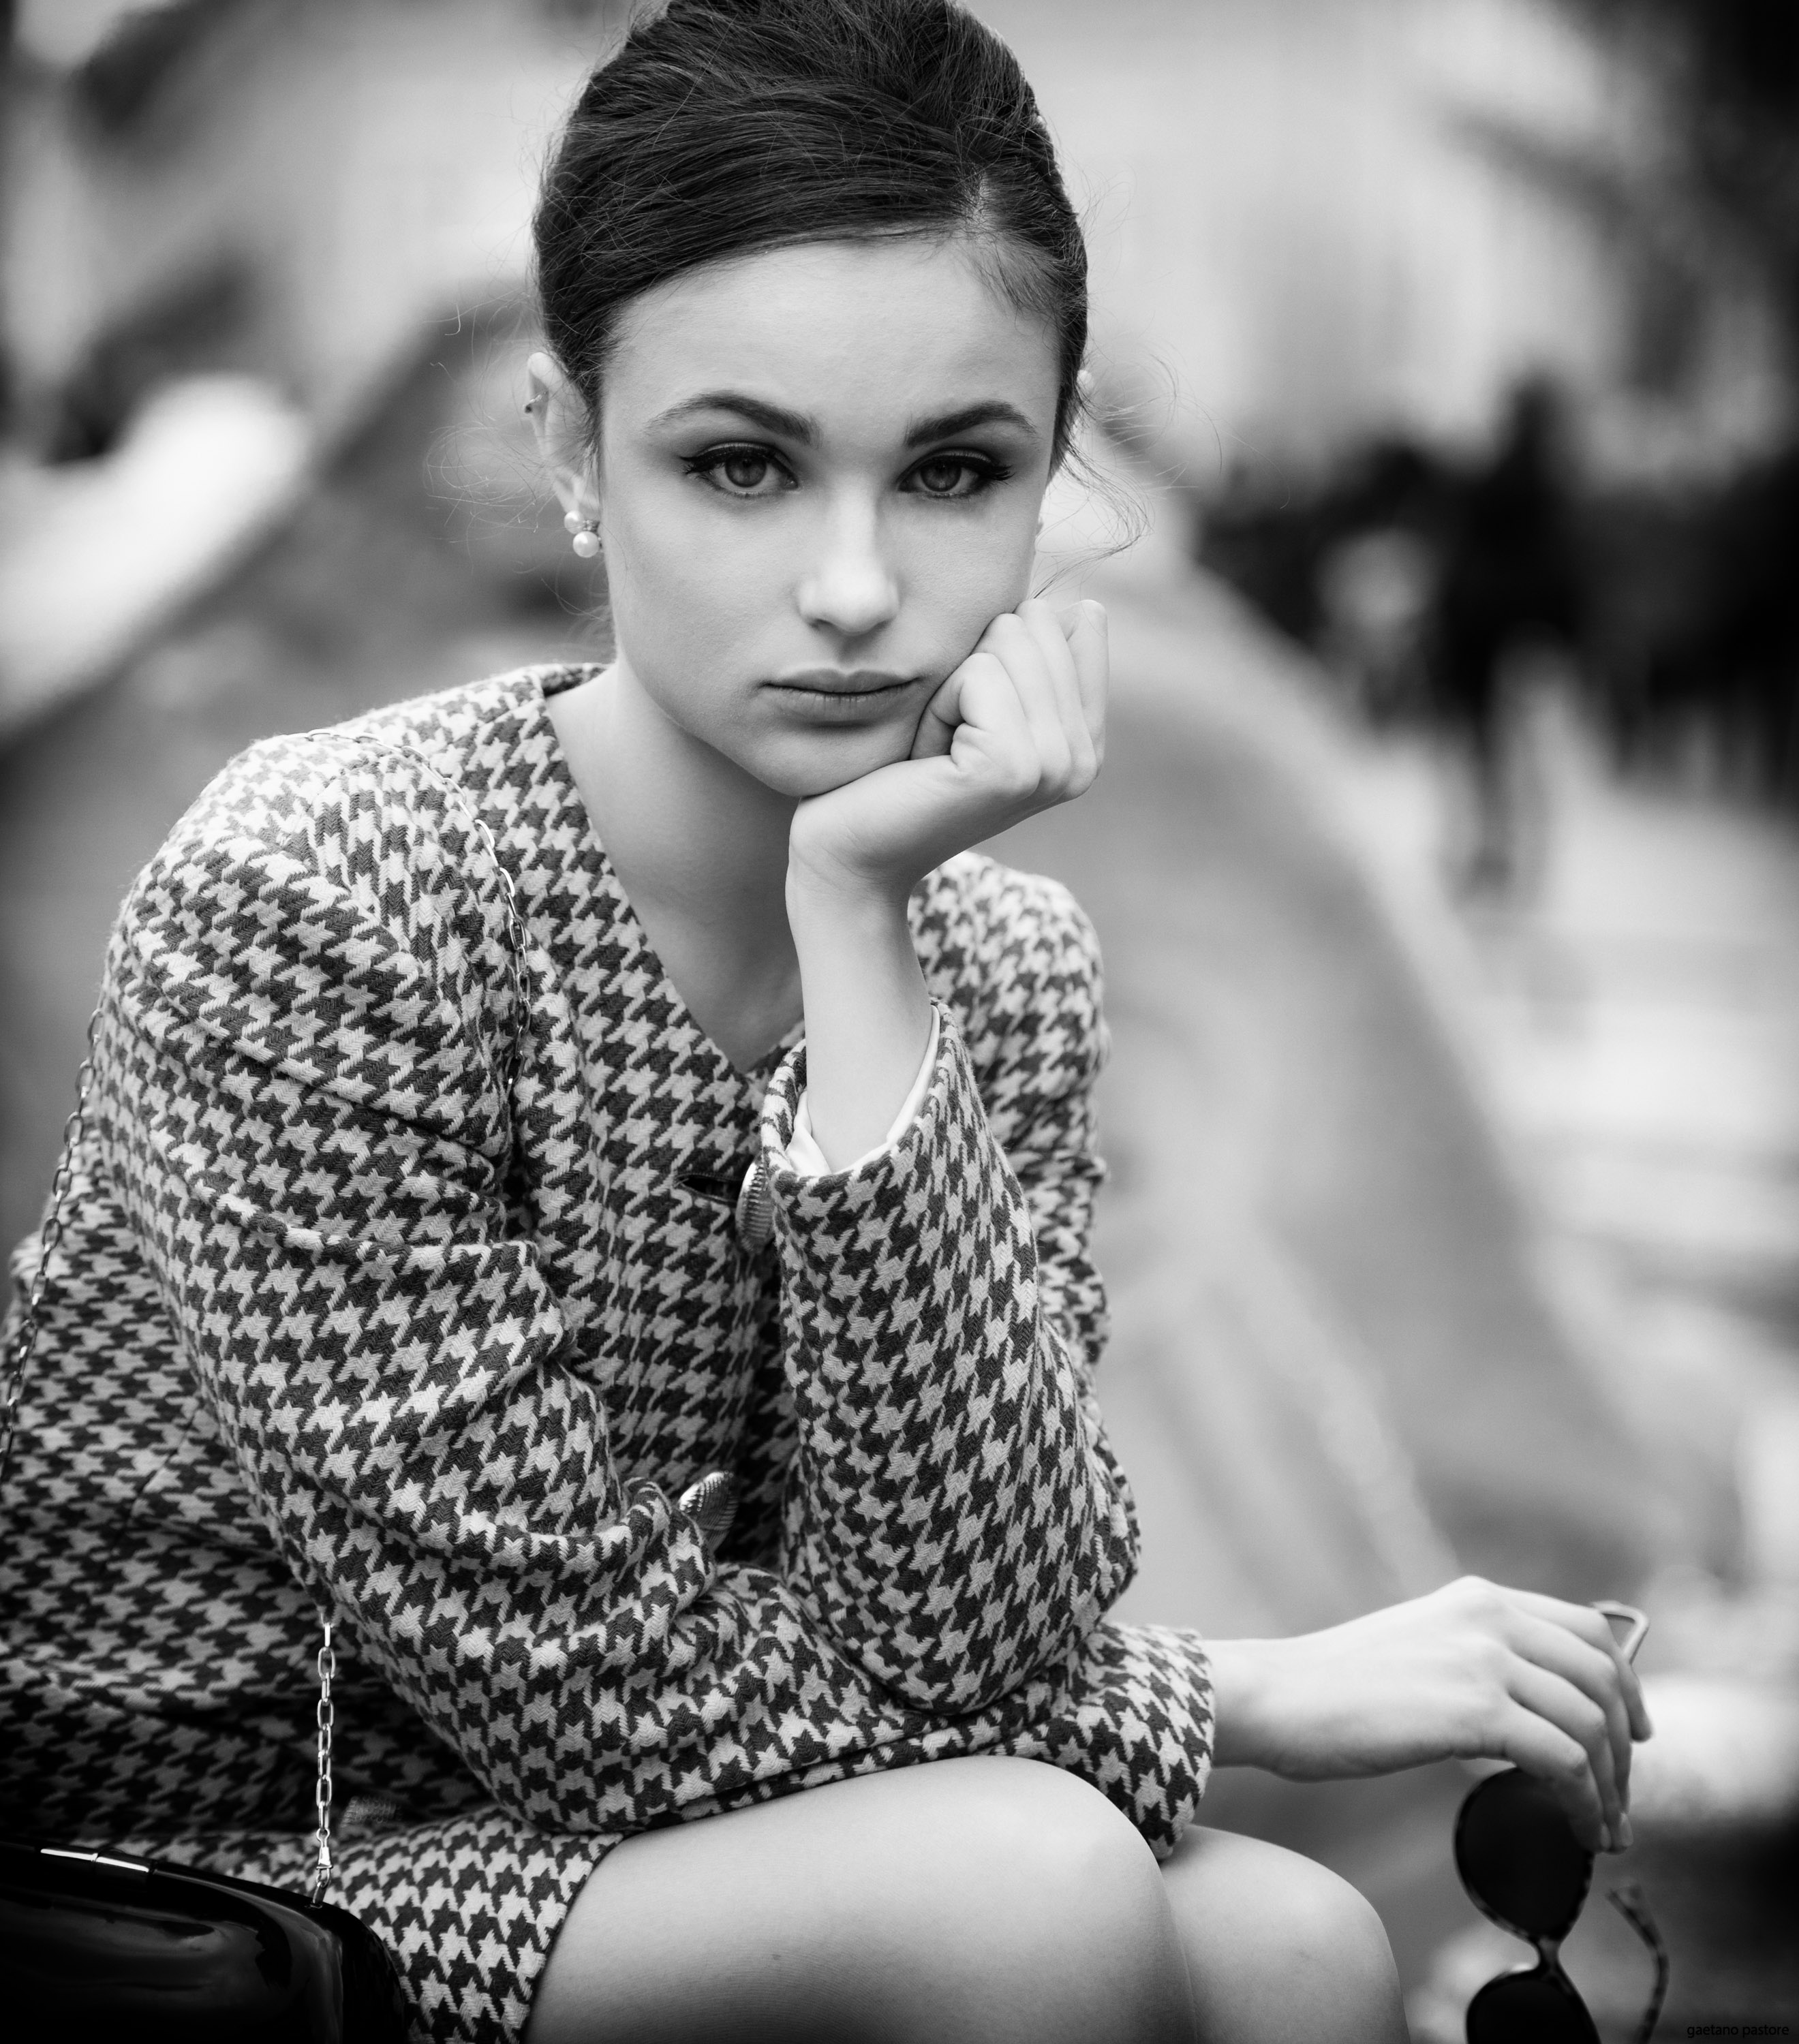 Categories: Fashion, Portrait; Photo: GAETANO PASTORE; Model: CORA GASPAROTTI; Mua: GIULIA PENNA; Outfit: GAI MATTIOLO; Location: Piazza di Spagna – ROMA (RM)